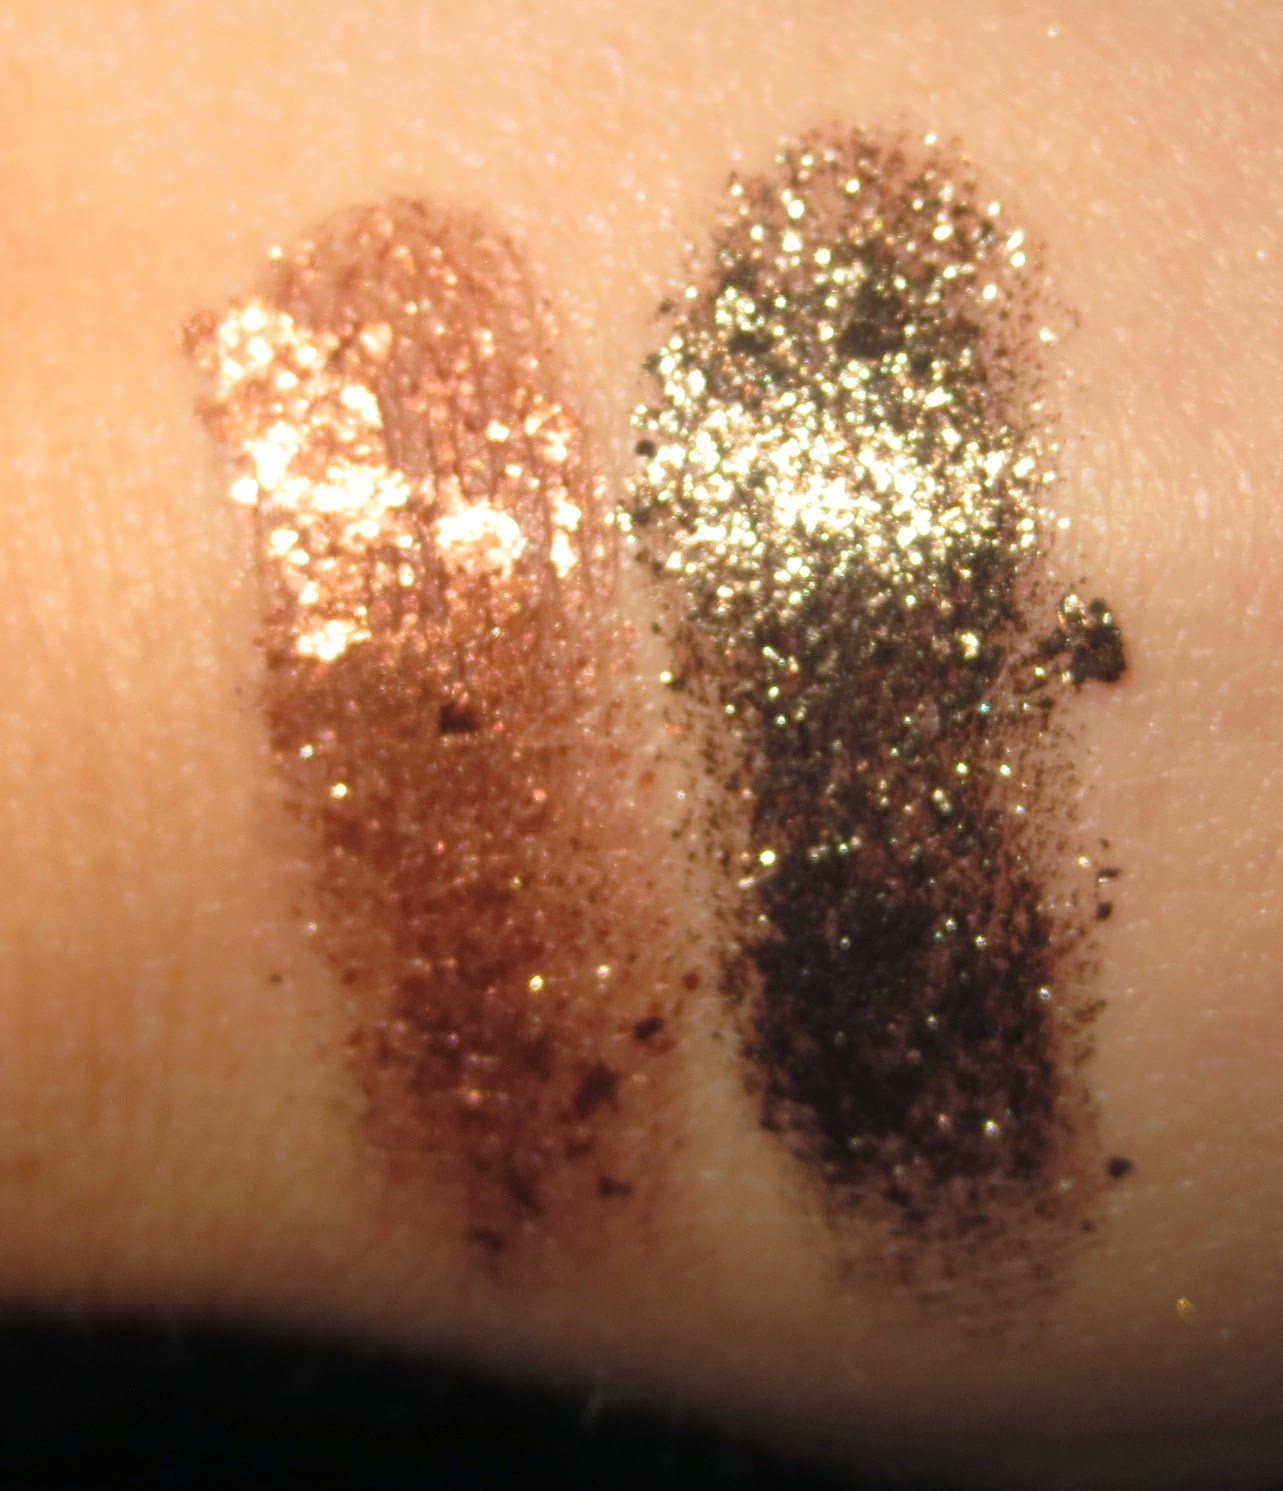 Stila Magnificent Metals Foil Finish Eye Shadow - Vintage Black Gold & Comex Copper swatches